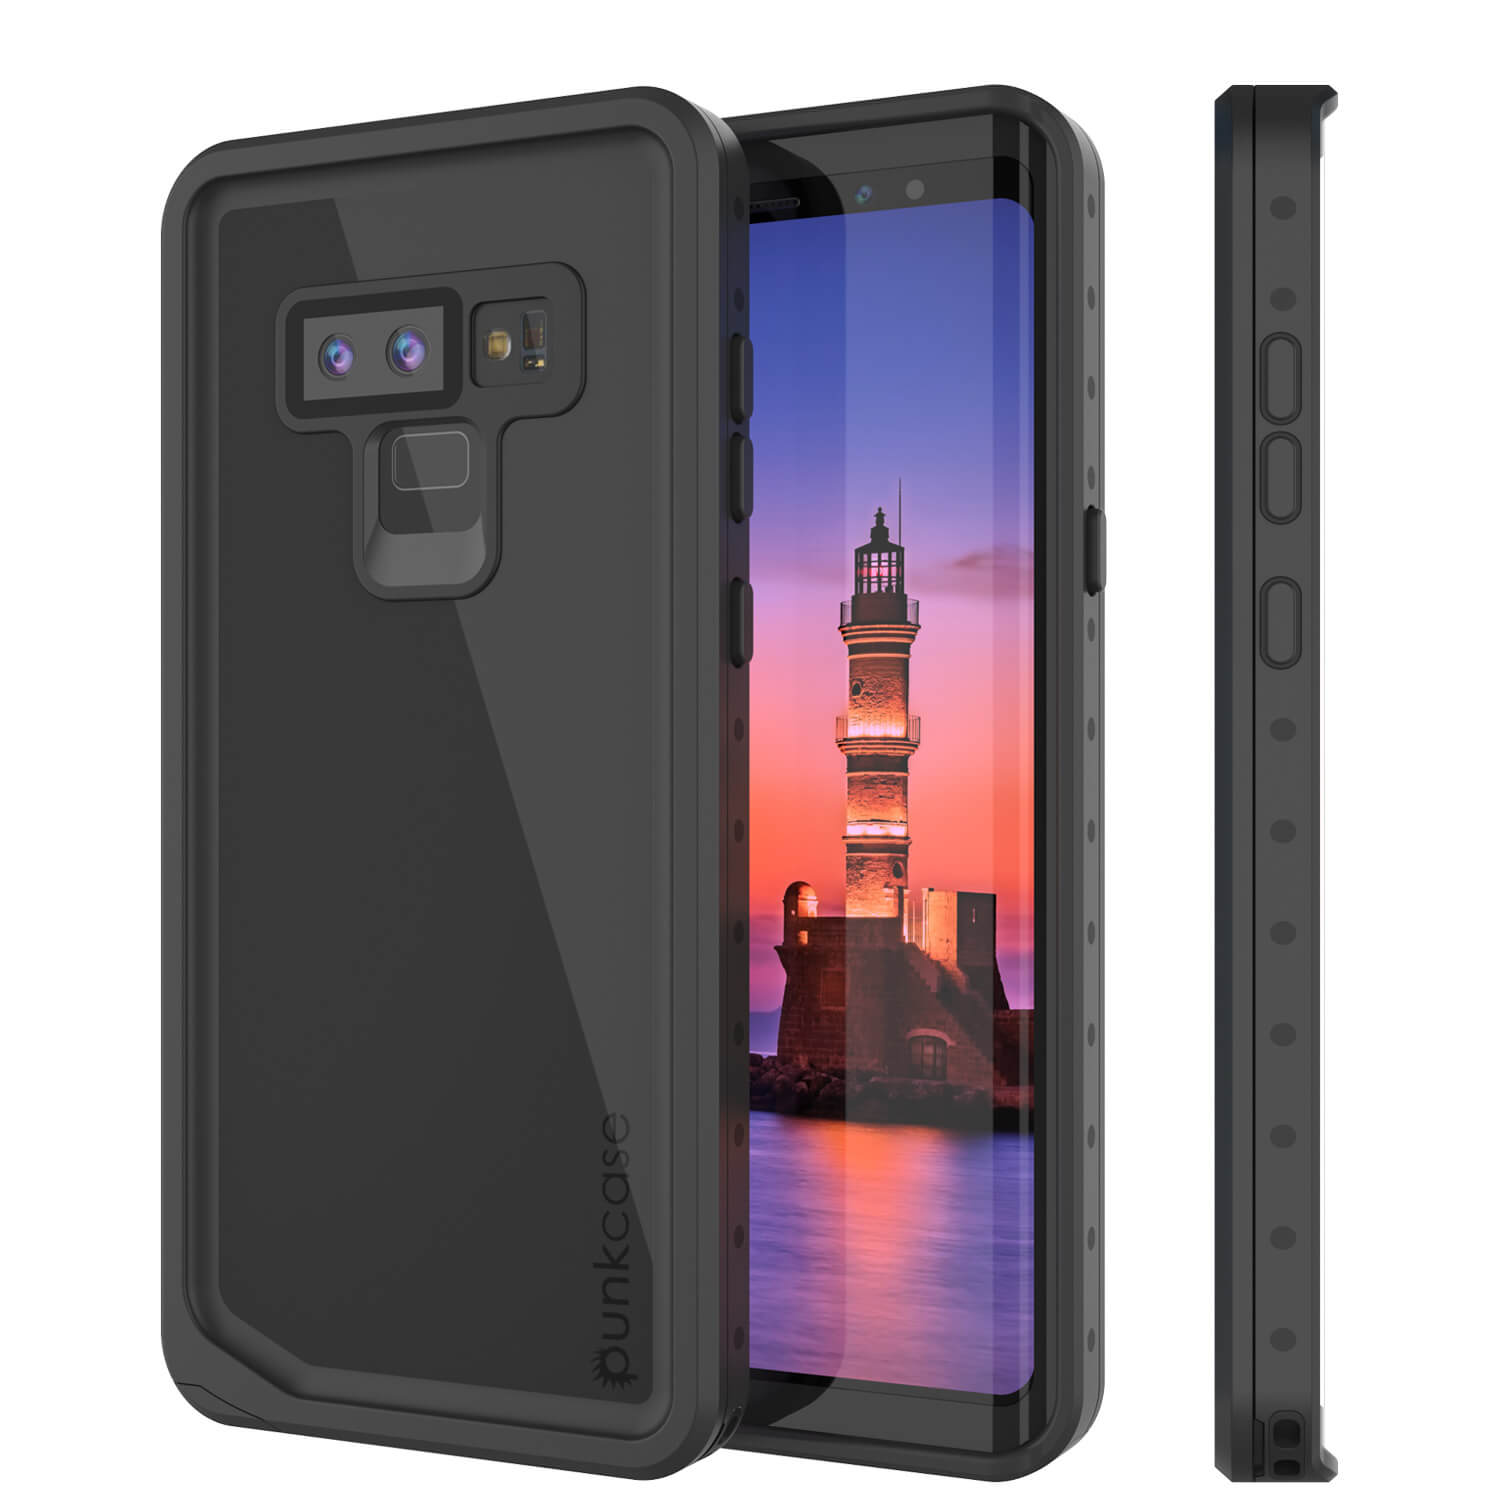 new arrival b3d2f 4059b Galaxy Note 9 Waterproof Case, Punkcase Studstar Black Thin Armor Cover